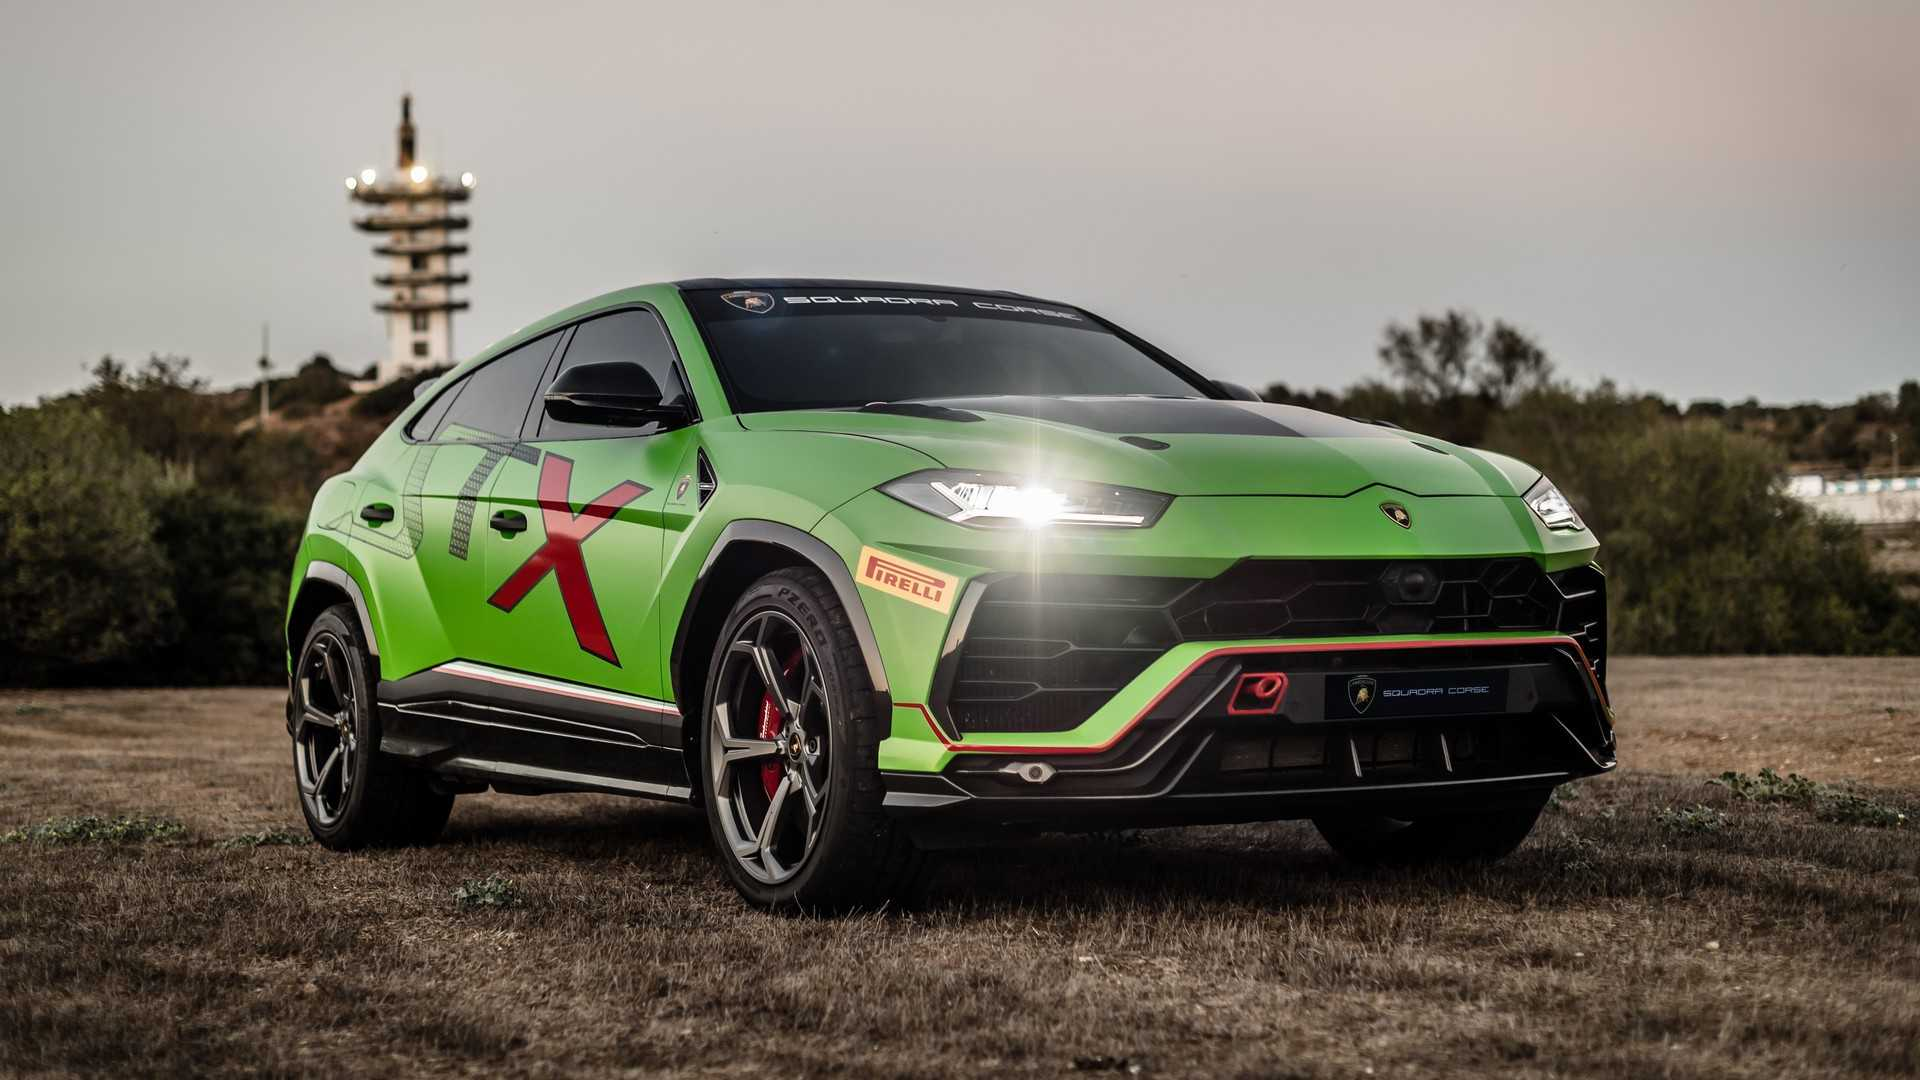 Lamborghini Urus ST,X Back In New Images Ahead Of 2020